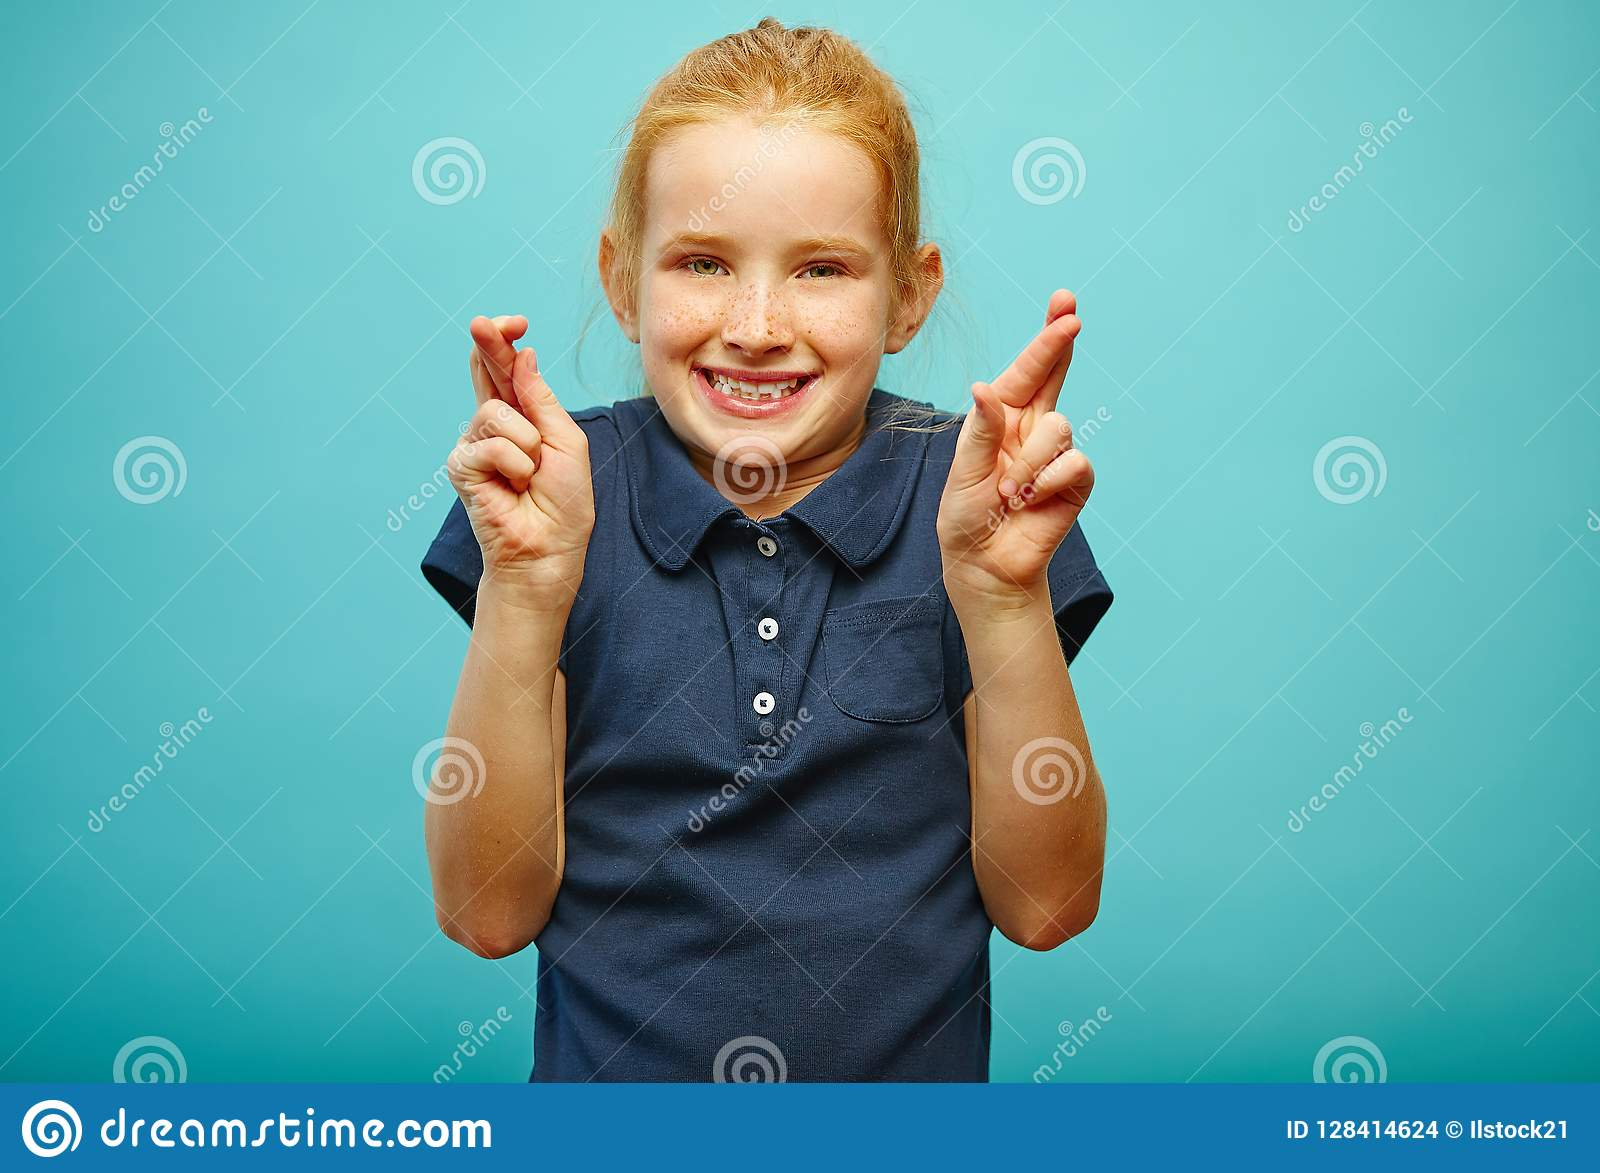 Beautiful little girl with red hair and freckles makes a wish, fingers crossed, believes in fulfillment of dreams, has a